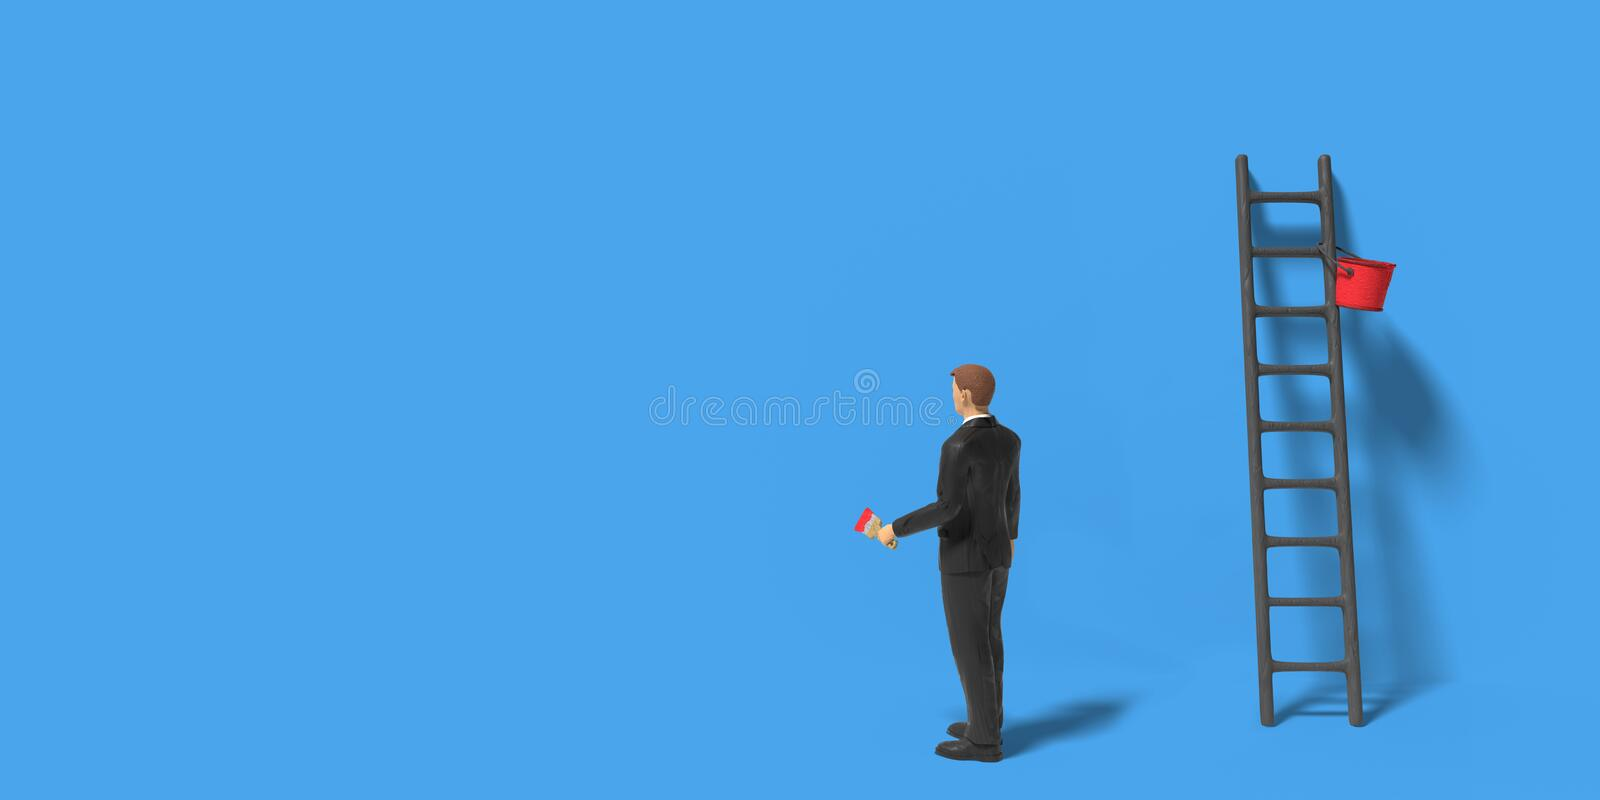 Miniature figurine businessman character with ladder and red paint in front of a wall isolated on blue background stock images